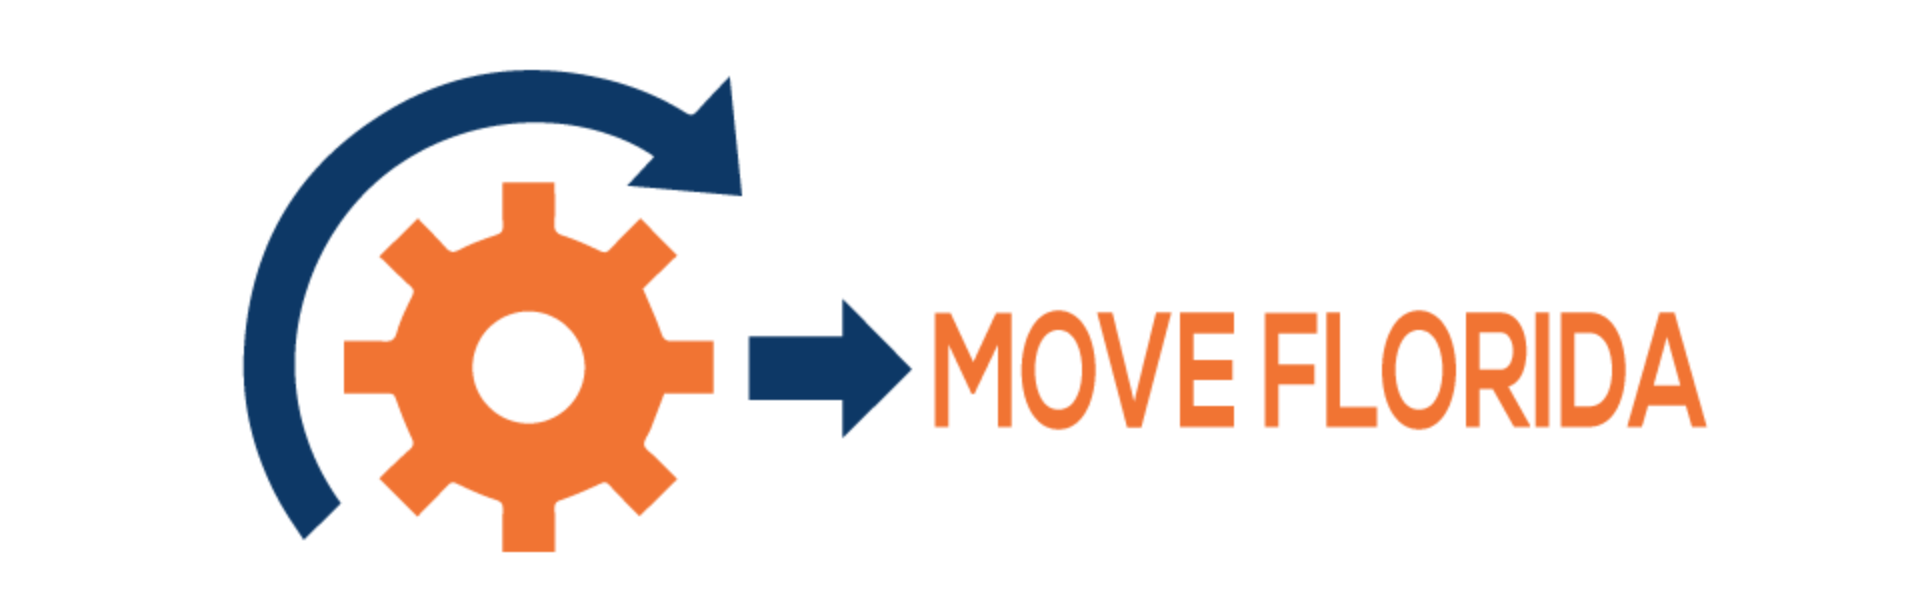 Move Florida|Office Movers|Residential Movers|FF&E Hotel Installers|Tampa St Pete Movers Moving Companies